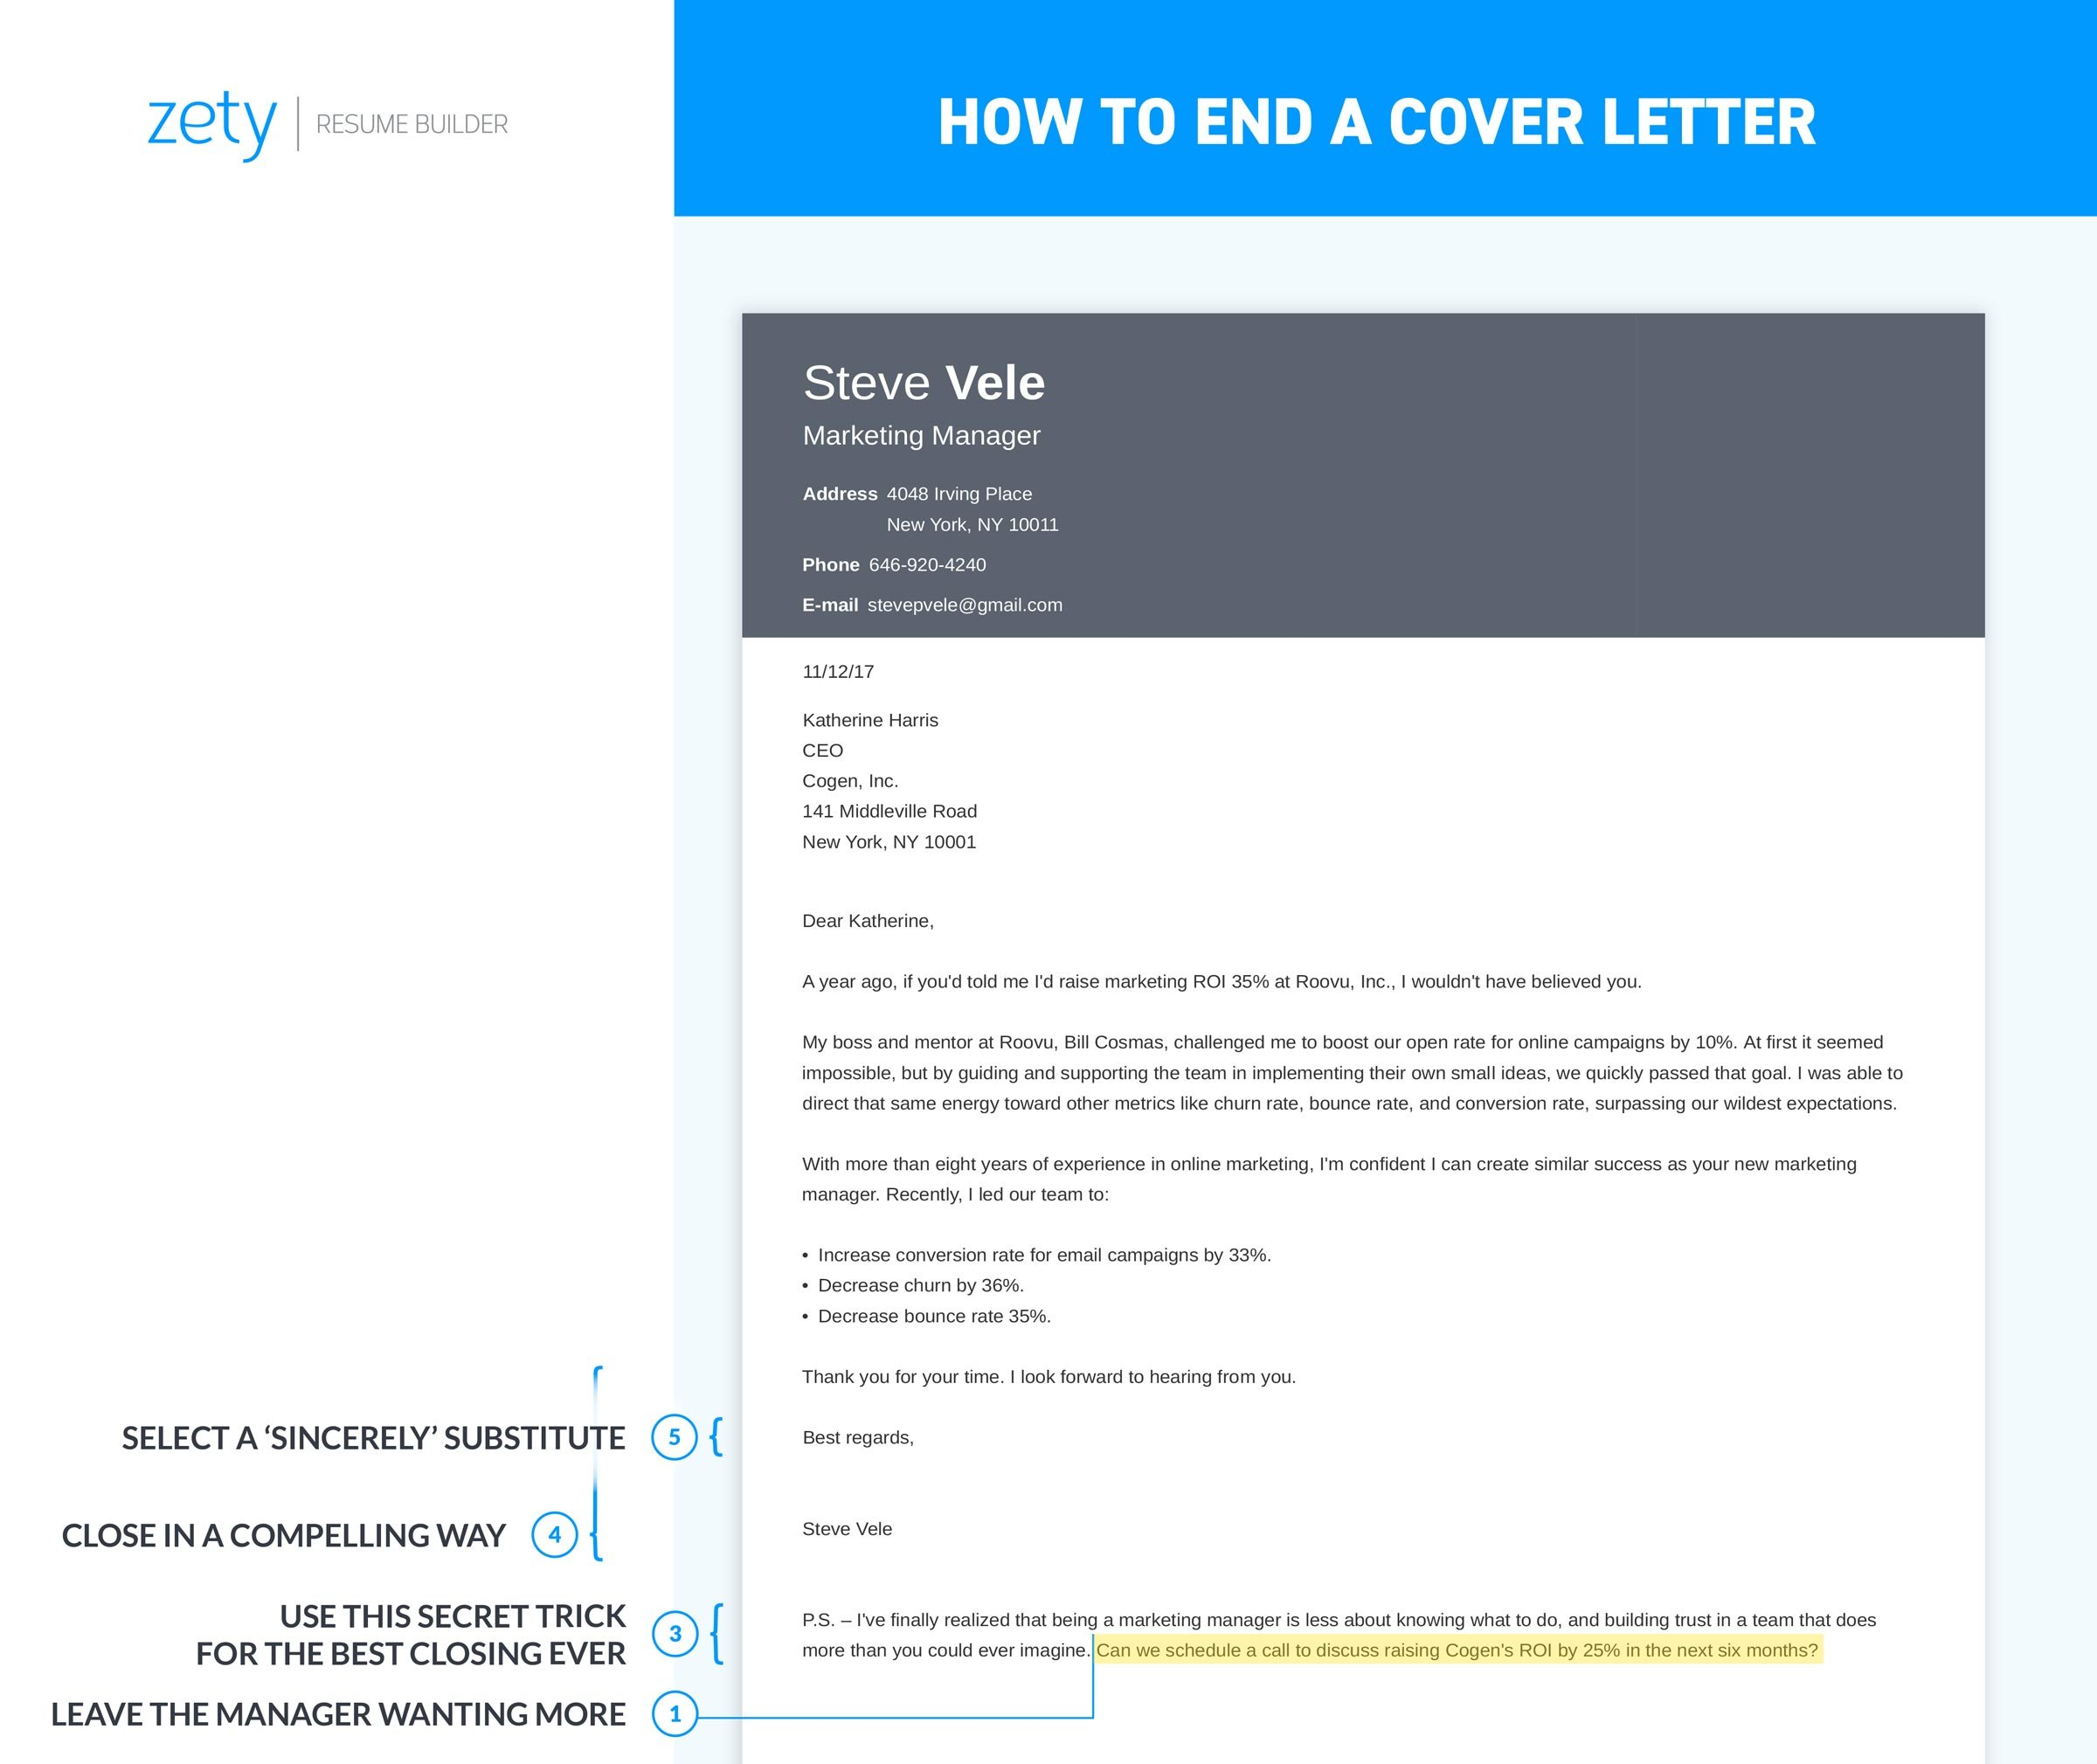 How To End A Cover Letter 20 Examples Of Great Closing Paragraphs